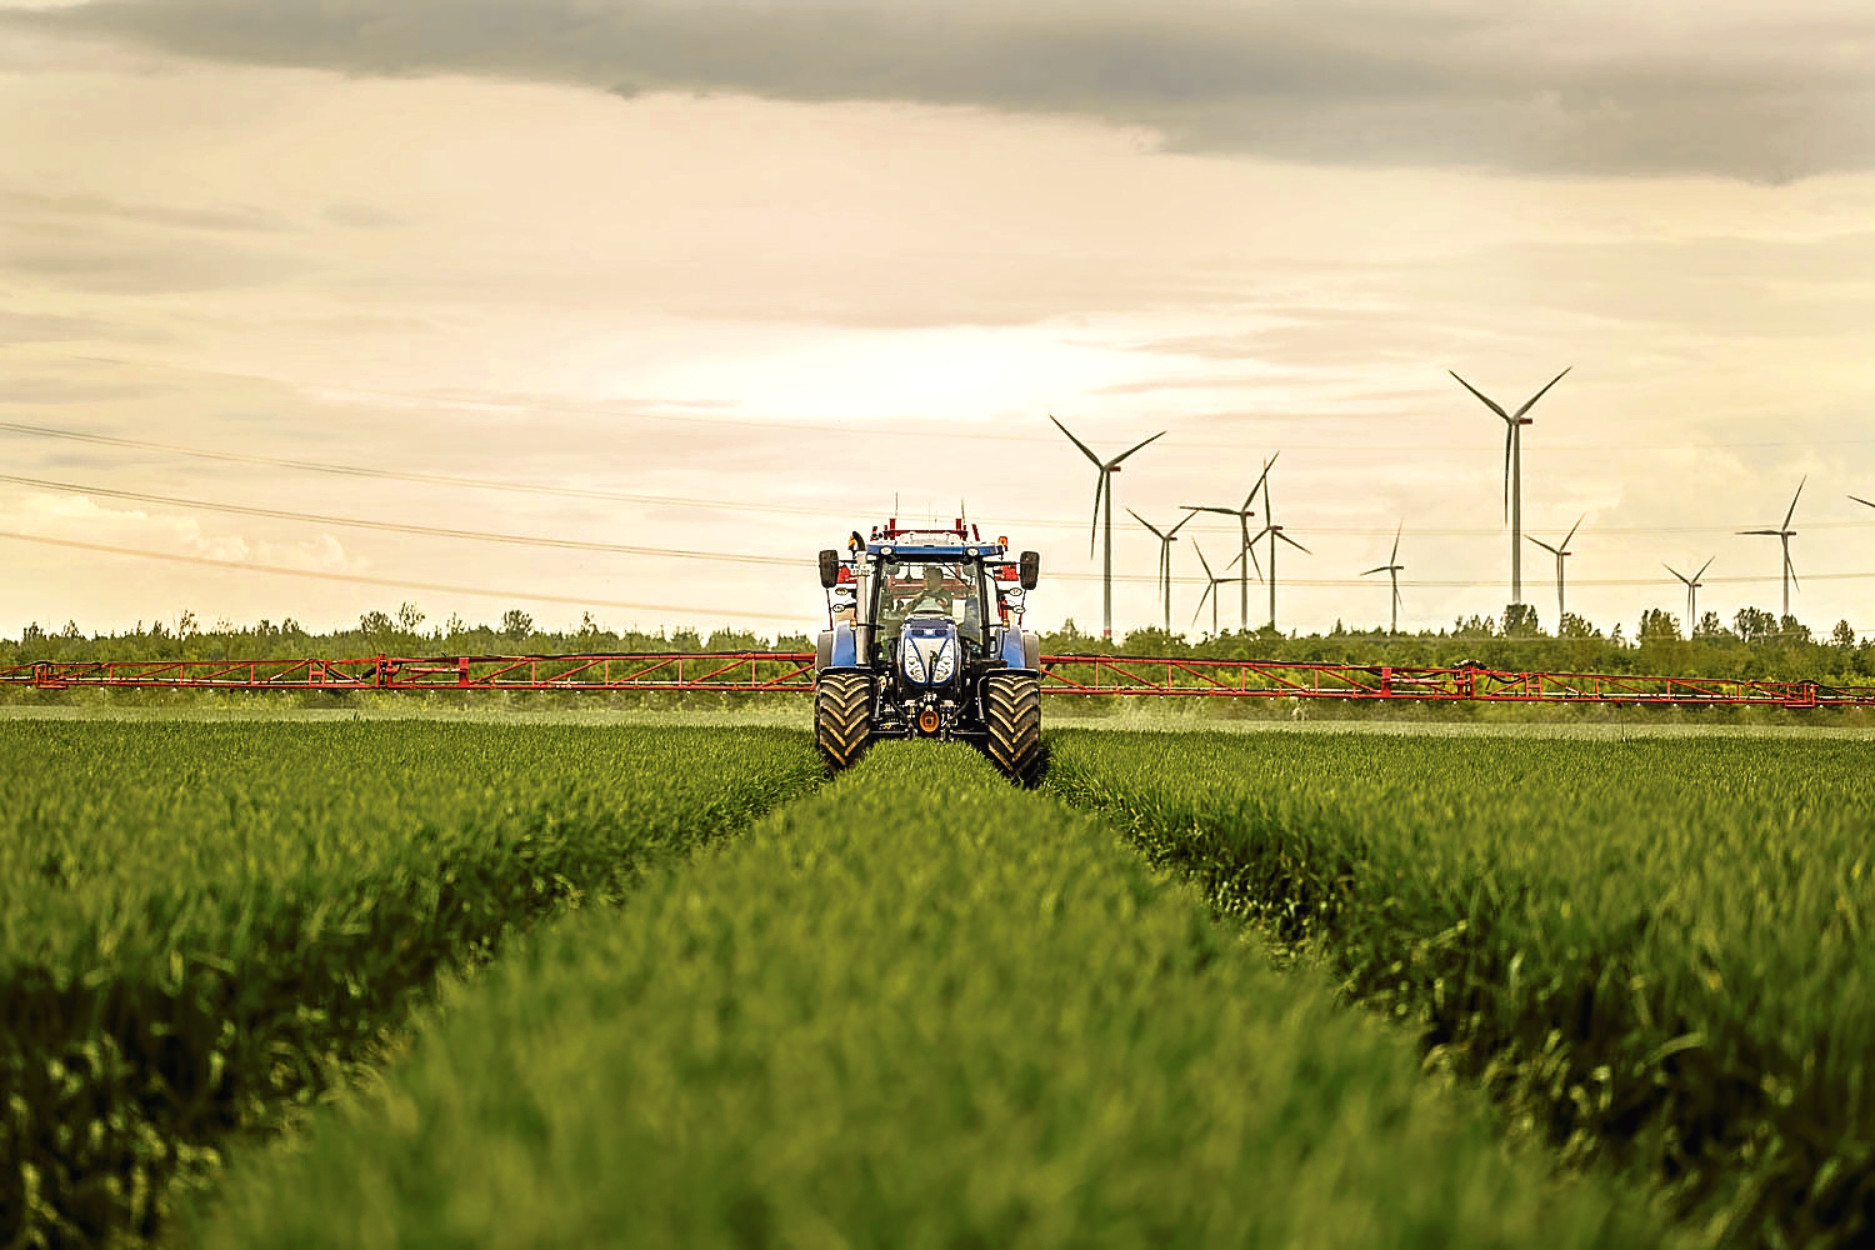 New technologies jointly developed by Bayer and Bosch will help farmers applying herbicides more efficiently